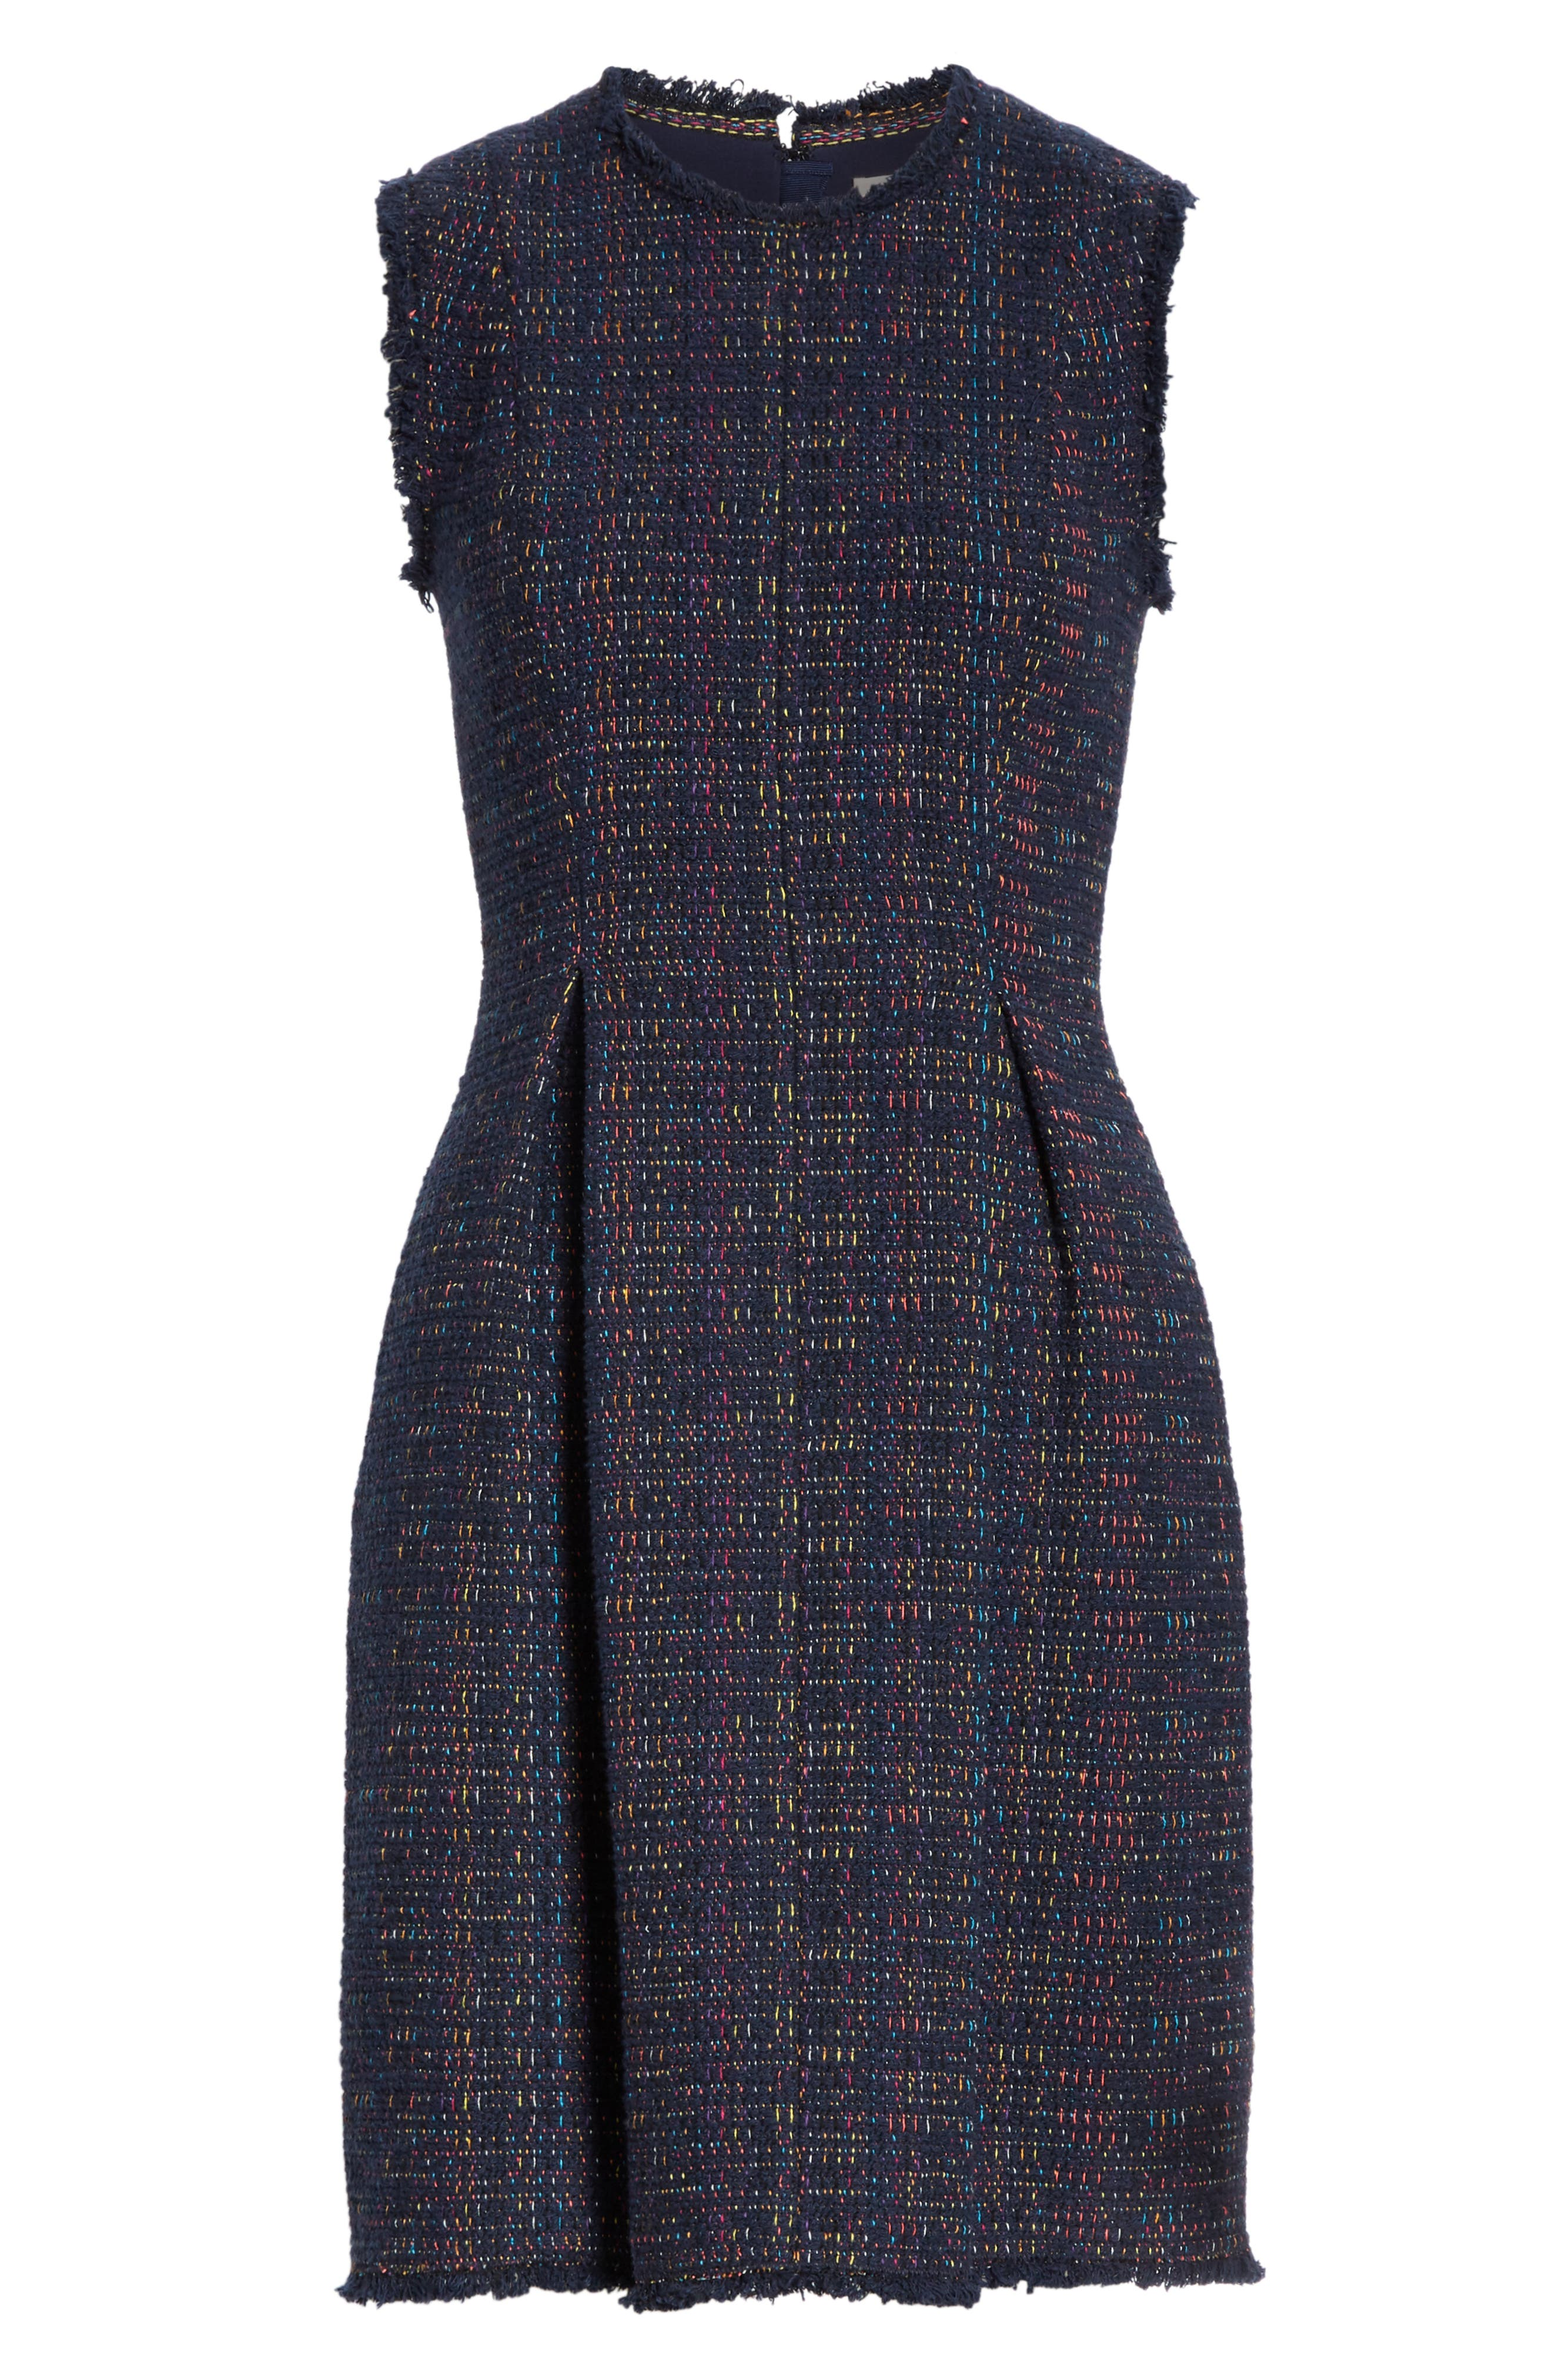 REBECCA TAYLOR, Rainbow Tweed Fit & Flare Dress, Alternate thumbnail 7, color, NAVY